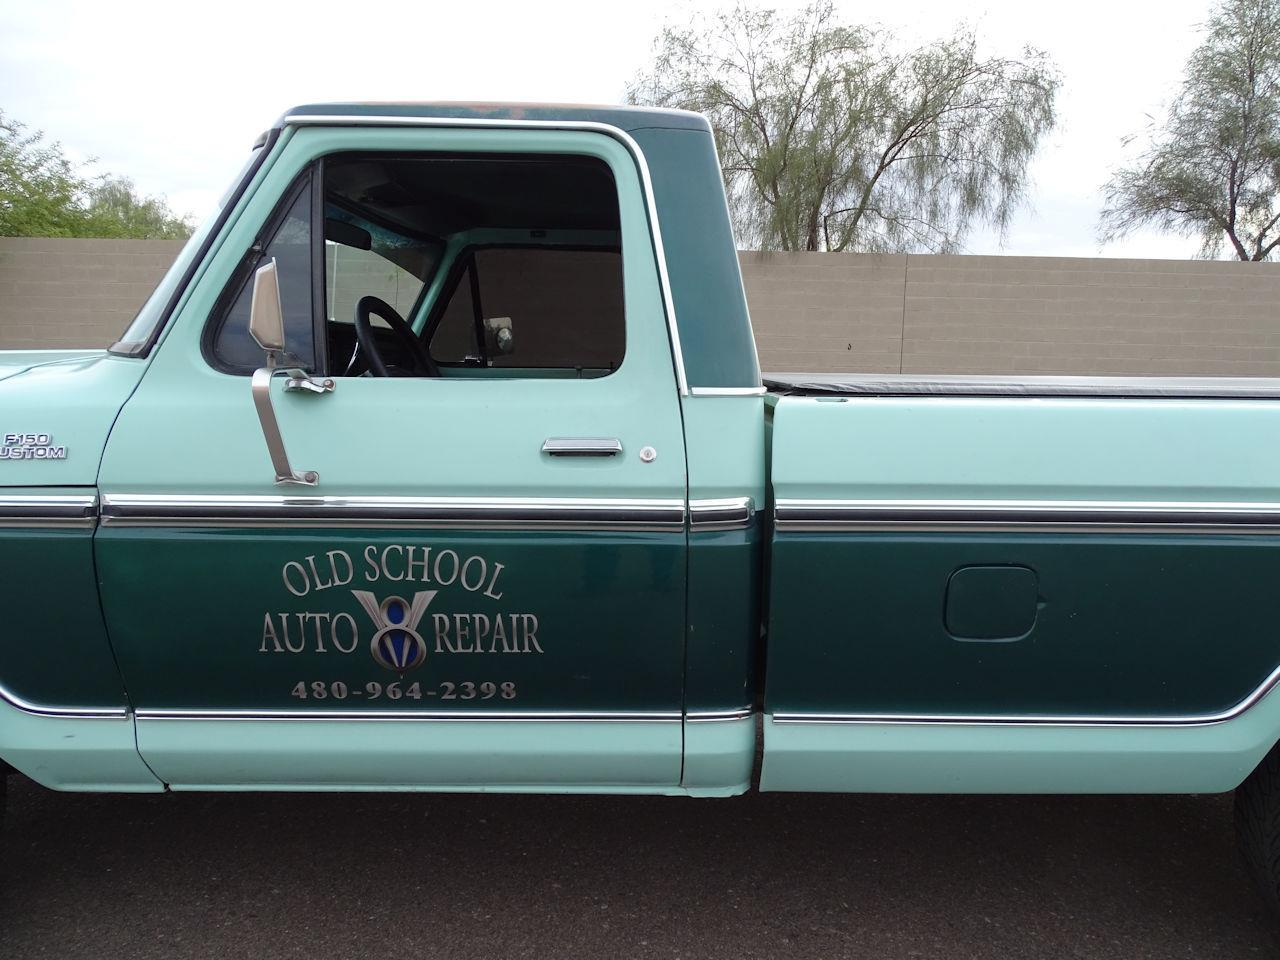 Large Picture of '78 Ford F150 located in Deer Valley Arizona - $17,995.00 Offered by Gateway Classic Cars - Scottsdale - MEMV